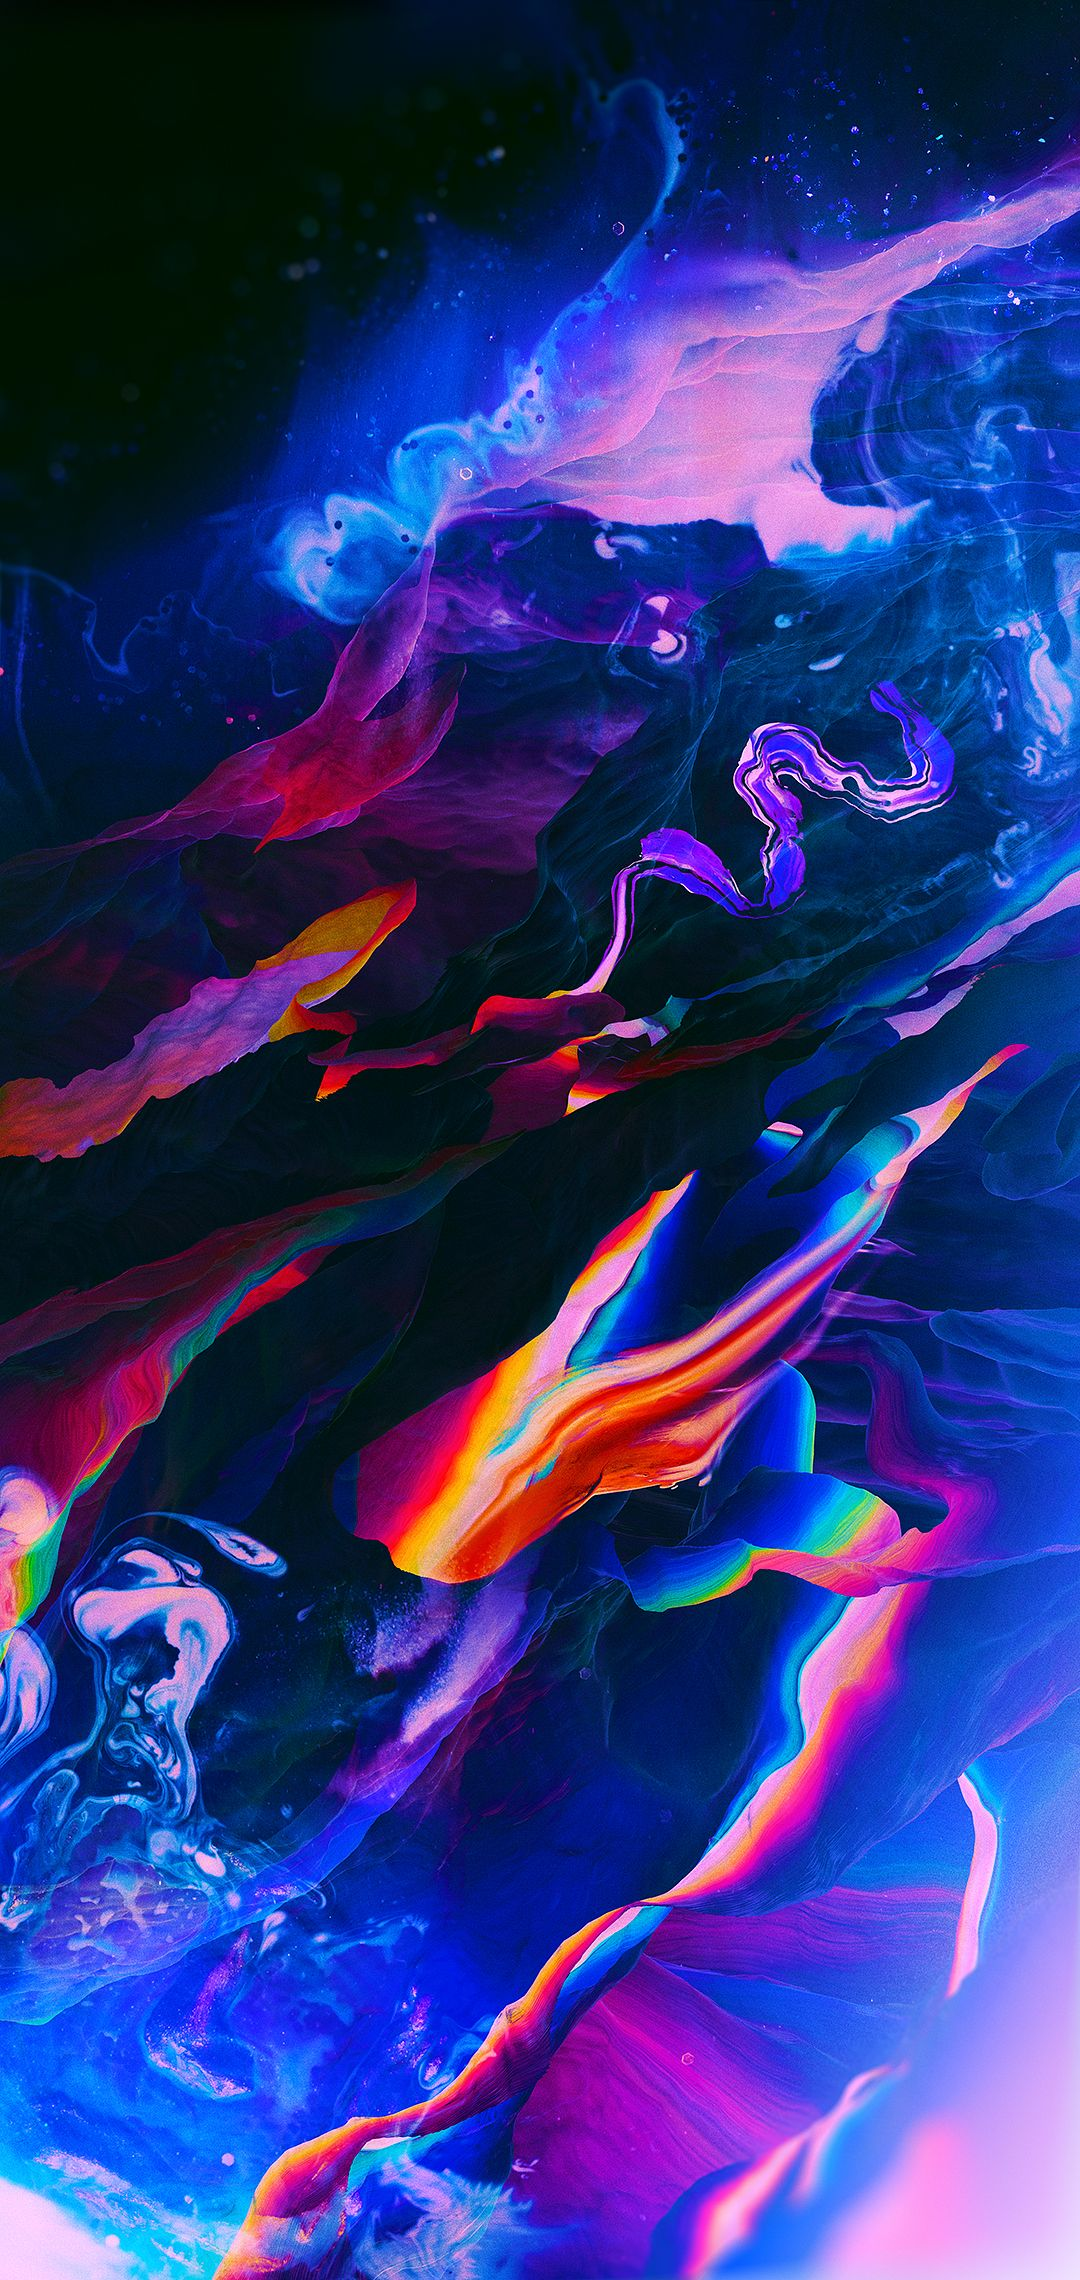 Paranoid Android 2018 Stock Wallpapers Submerged 2K (With